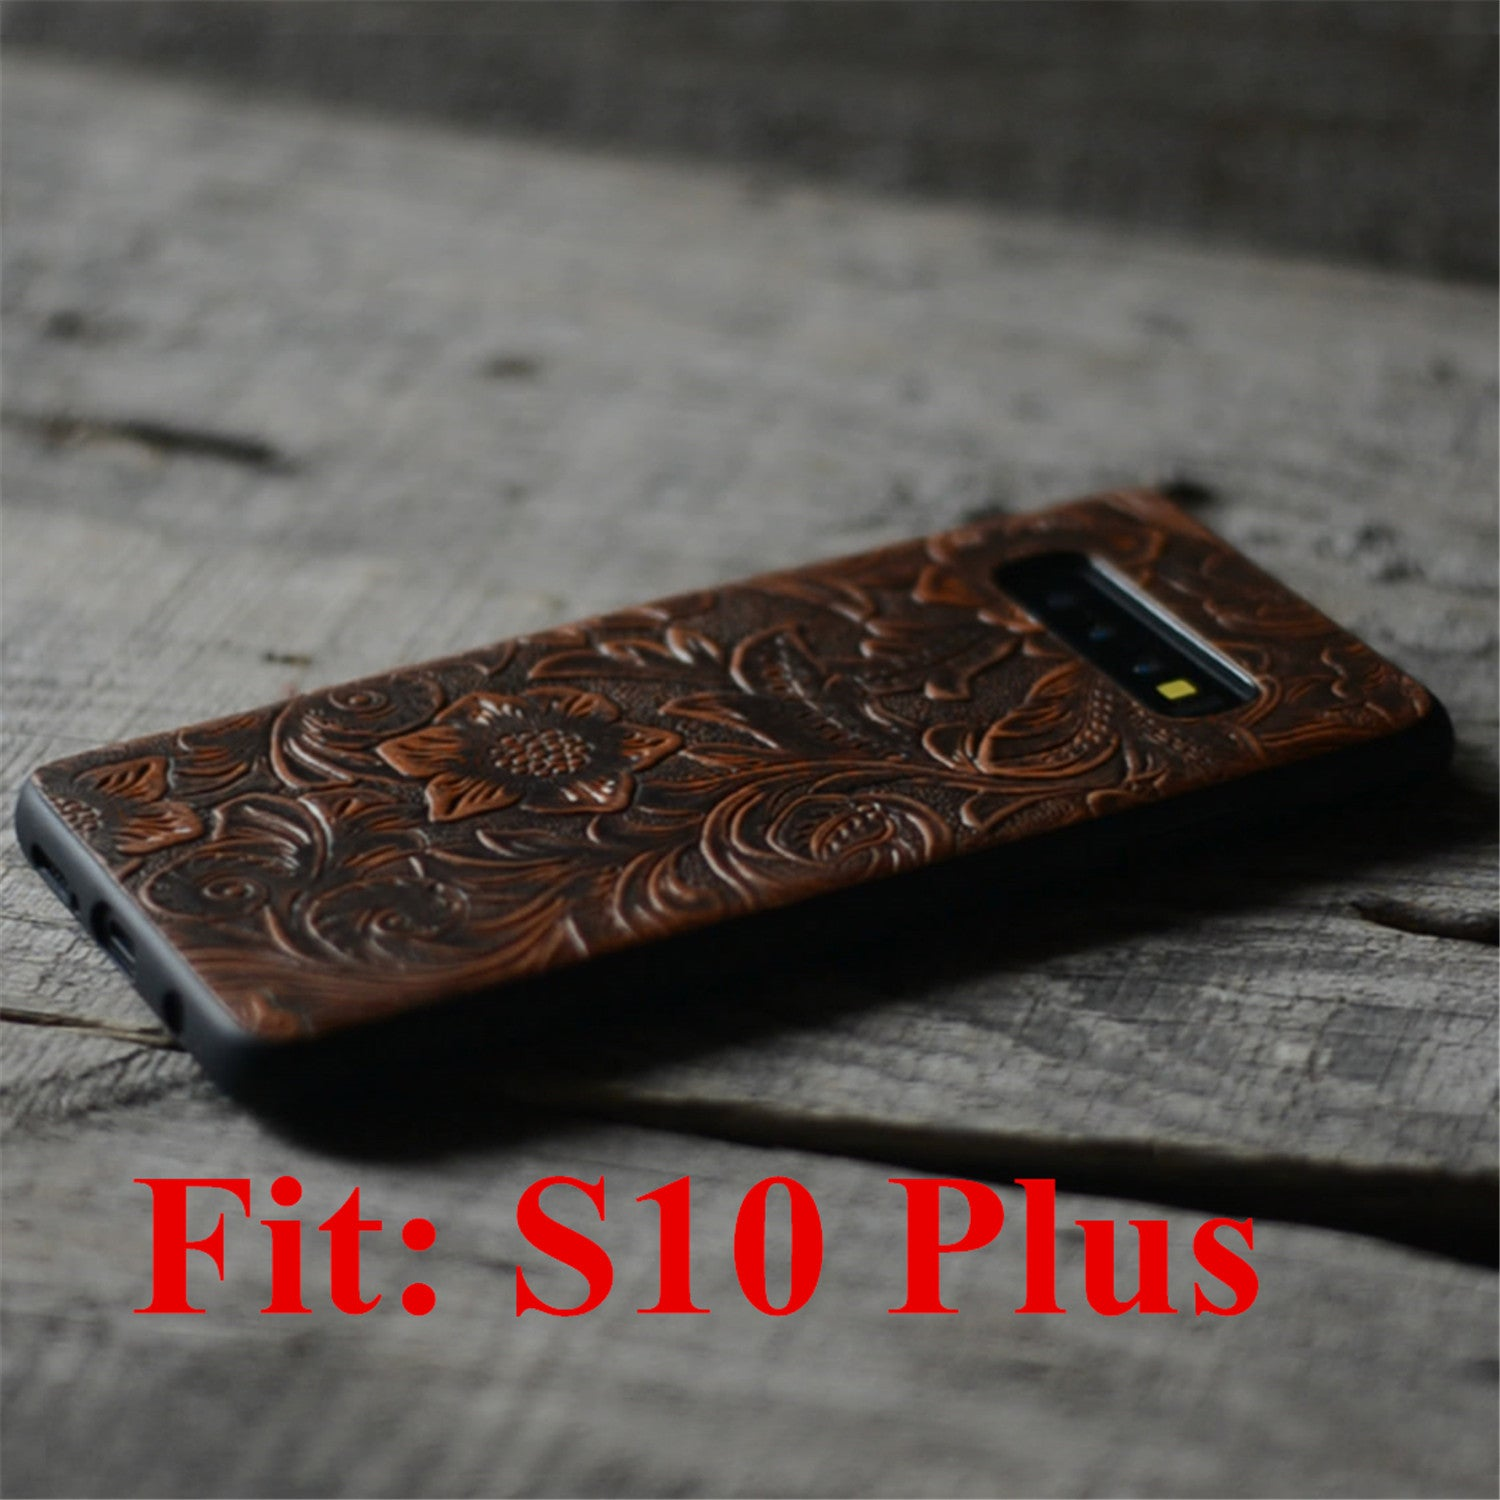 JJNUSA Handmade Leather Case for Samsung Galaxy s10 plus 6.4 inches Back Case